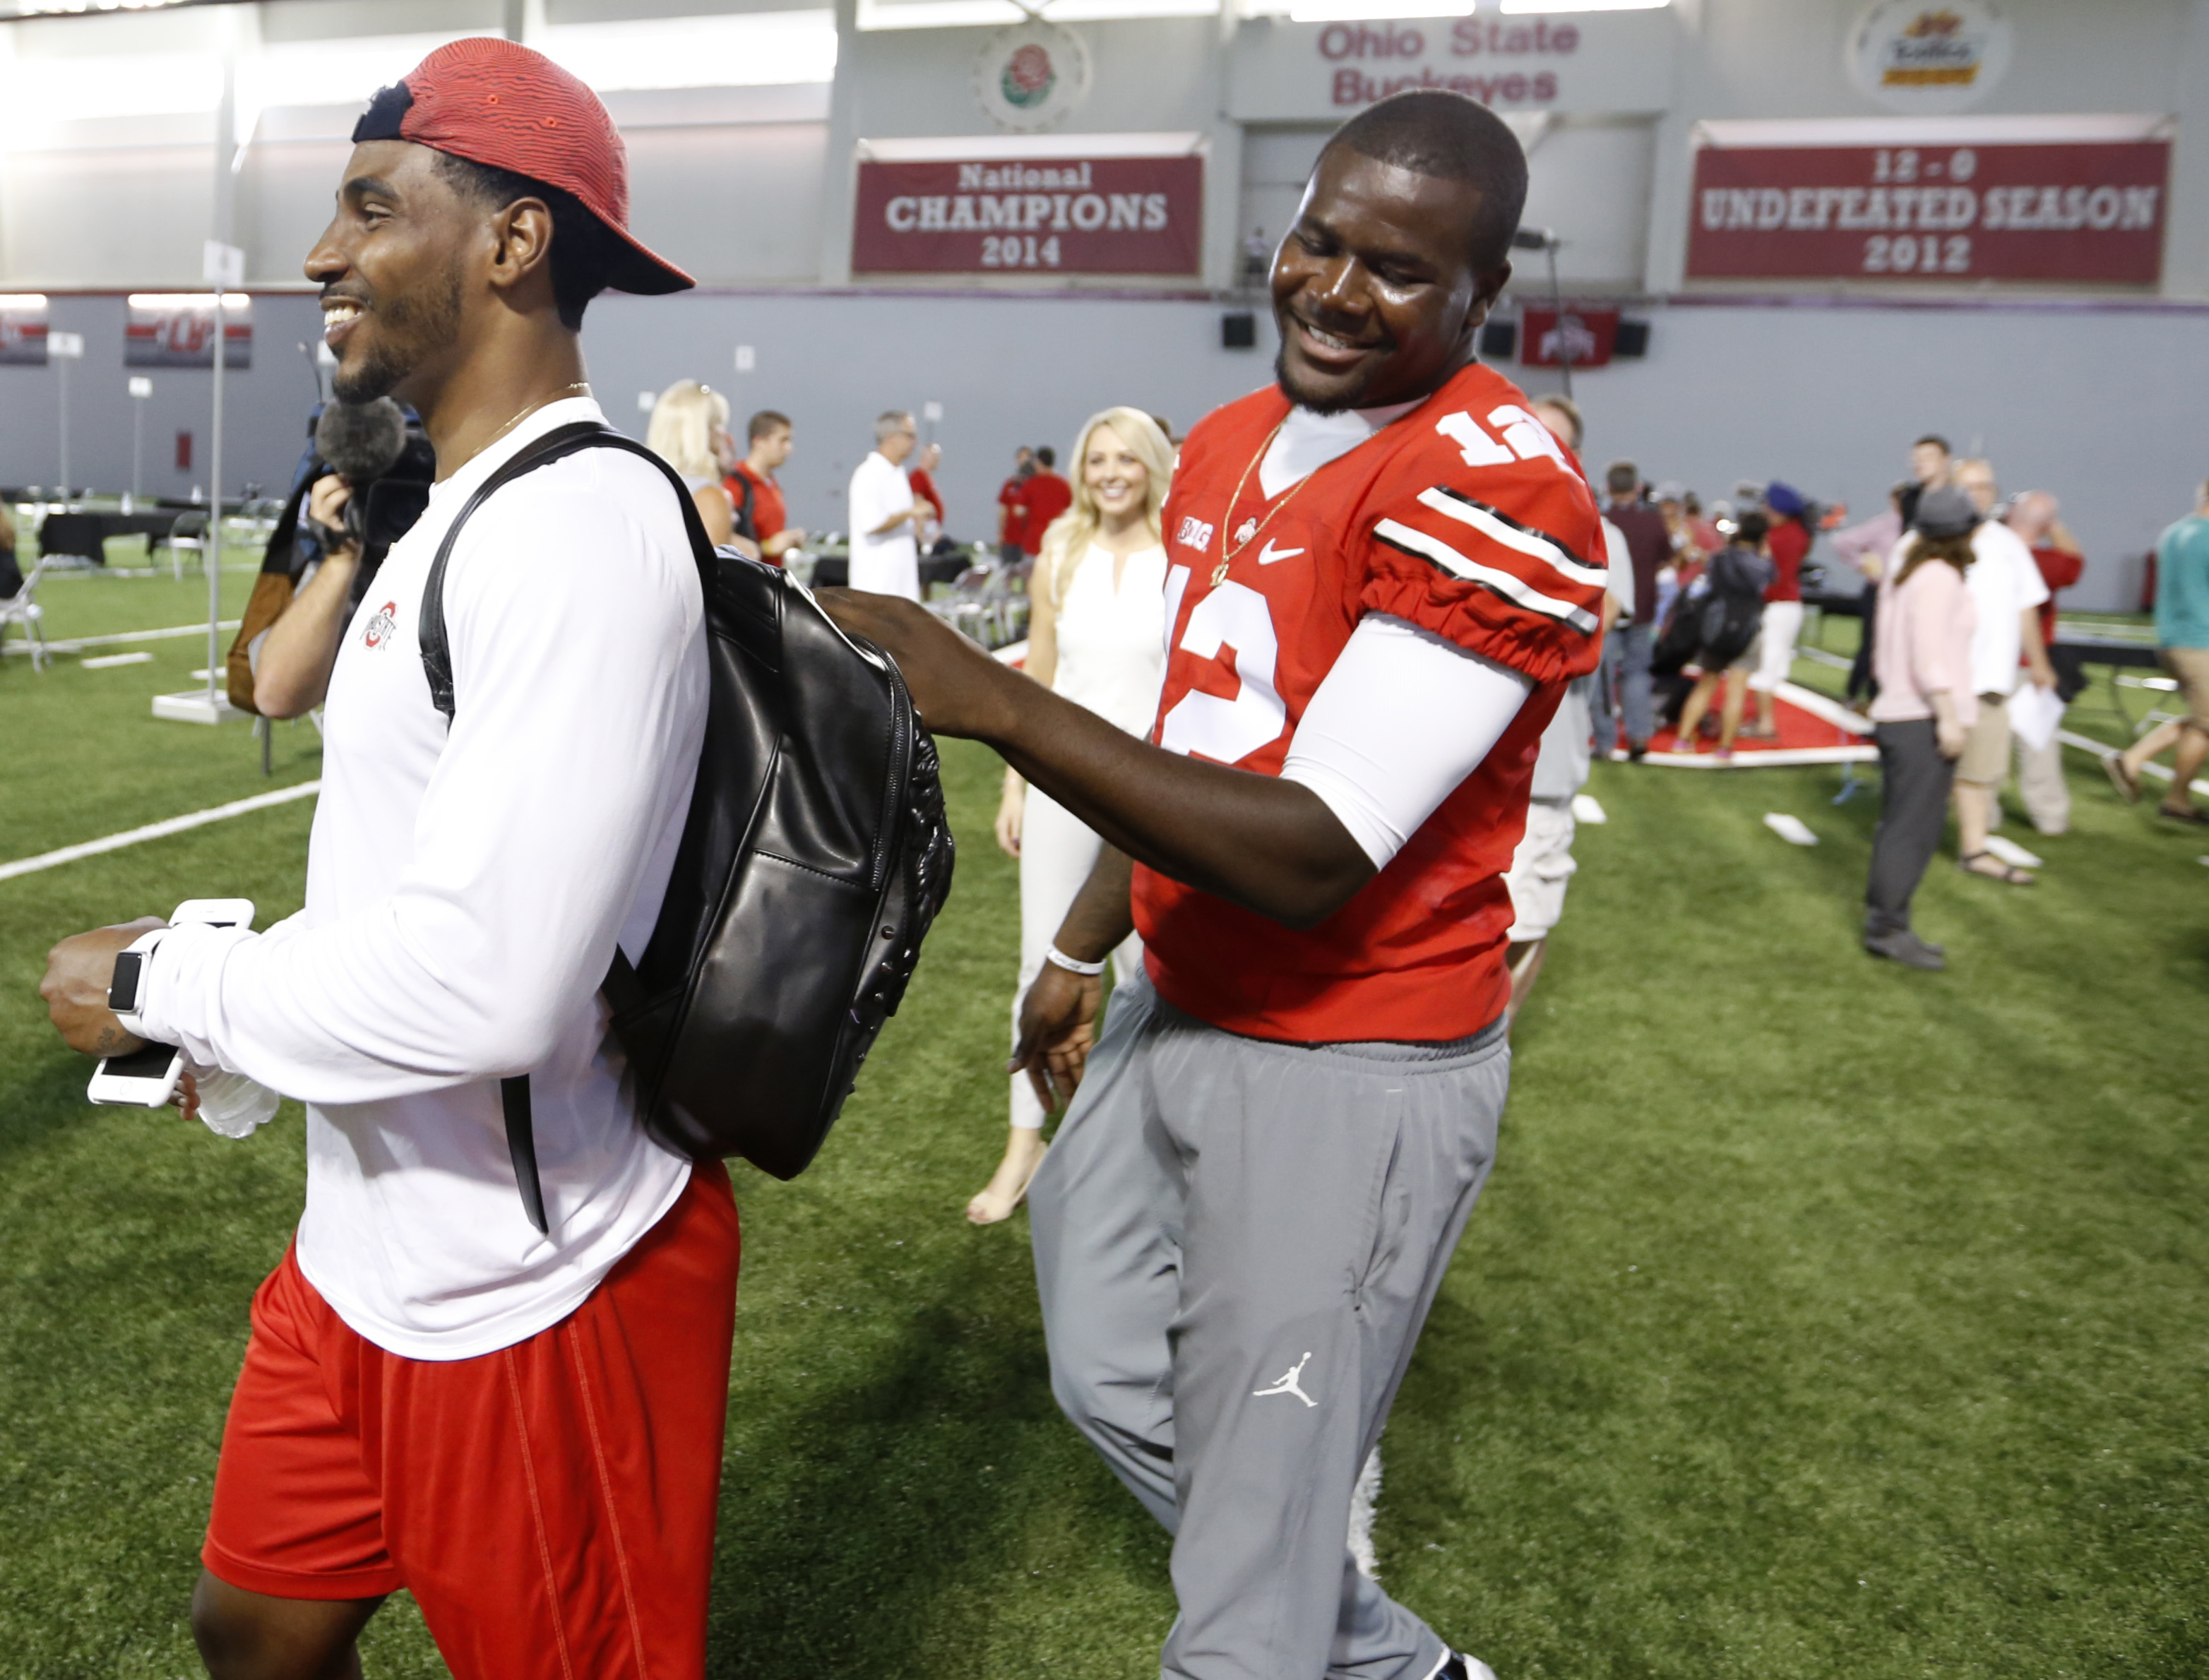 Ohio State quarterback Cardale Jones, right, jokes with former quarterback turned wide receiver Braxton Miller during the university's NCAA college football media day in Columbus, Ohio, Sunday, Aug. 16, 2015. (AP Photo/Paul Vernon)